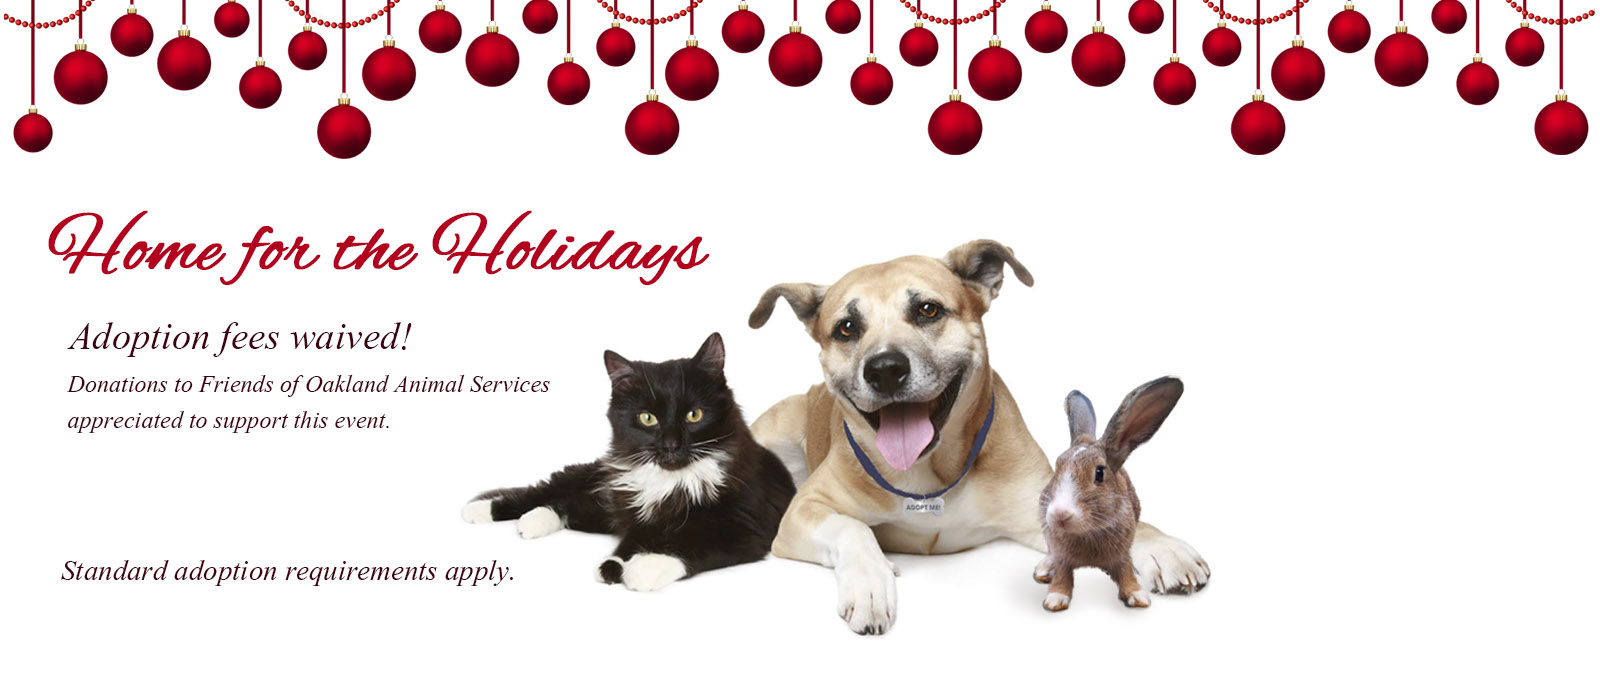 Home for the Holidays: Adoptions fees waived through January 7